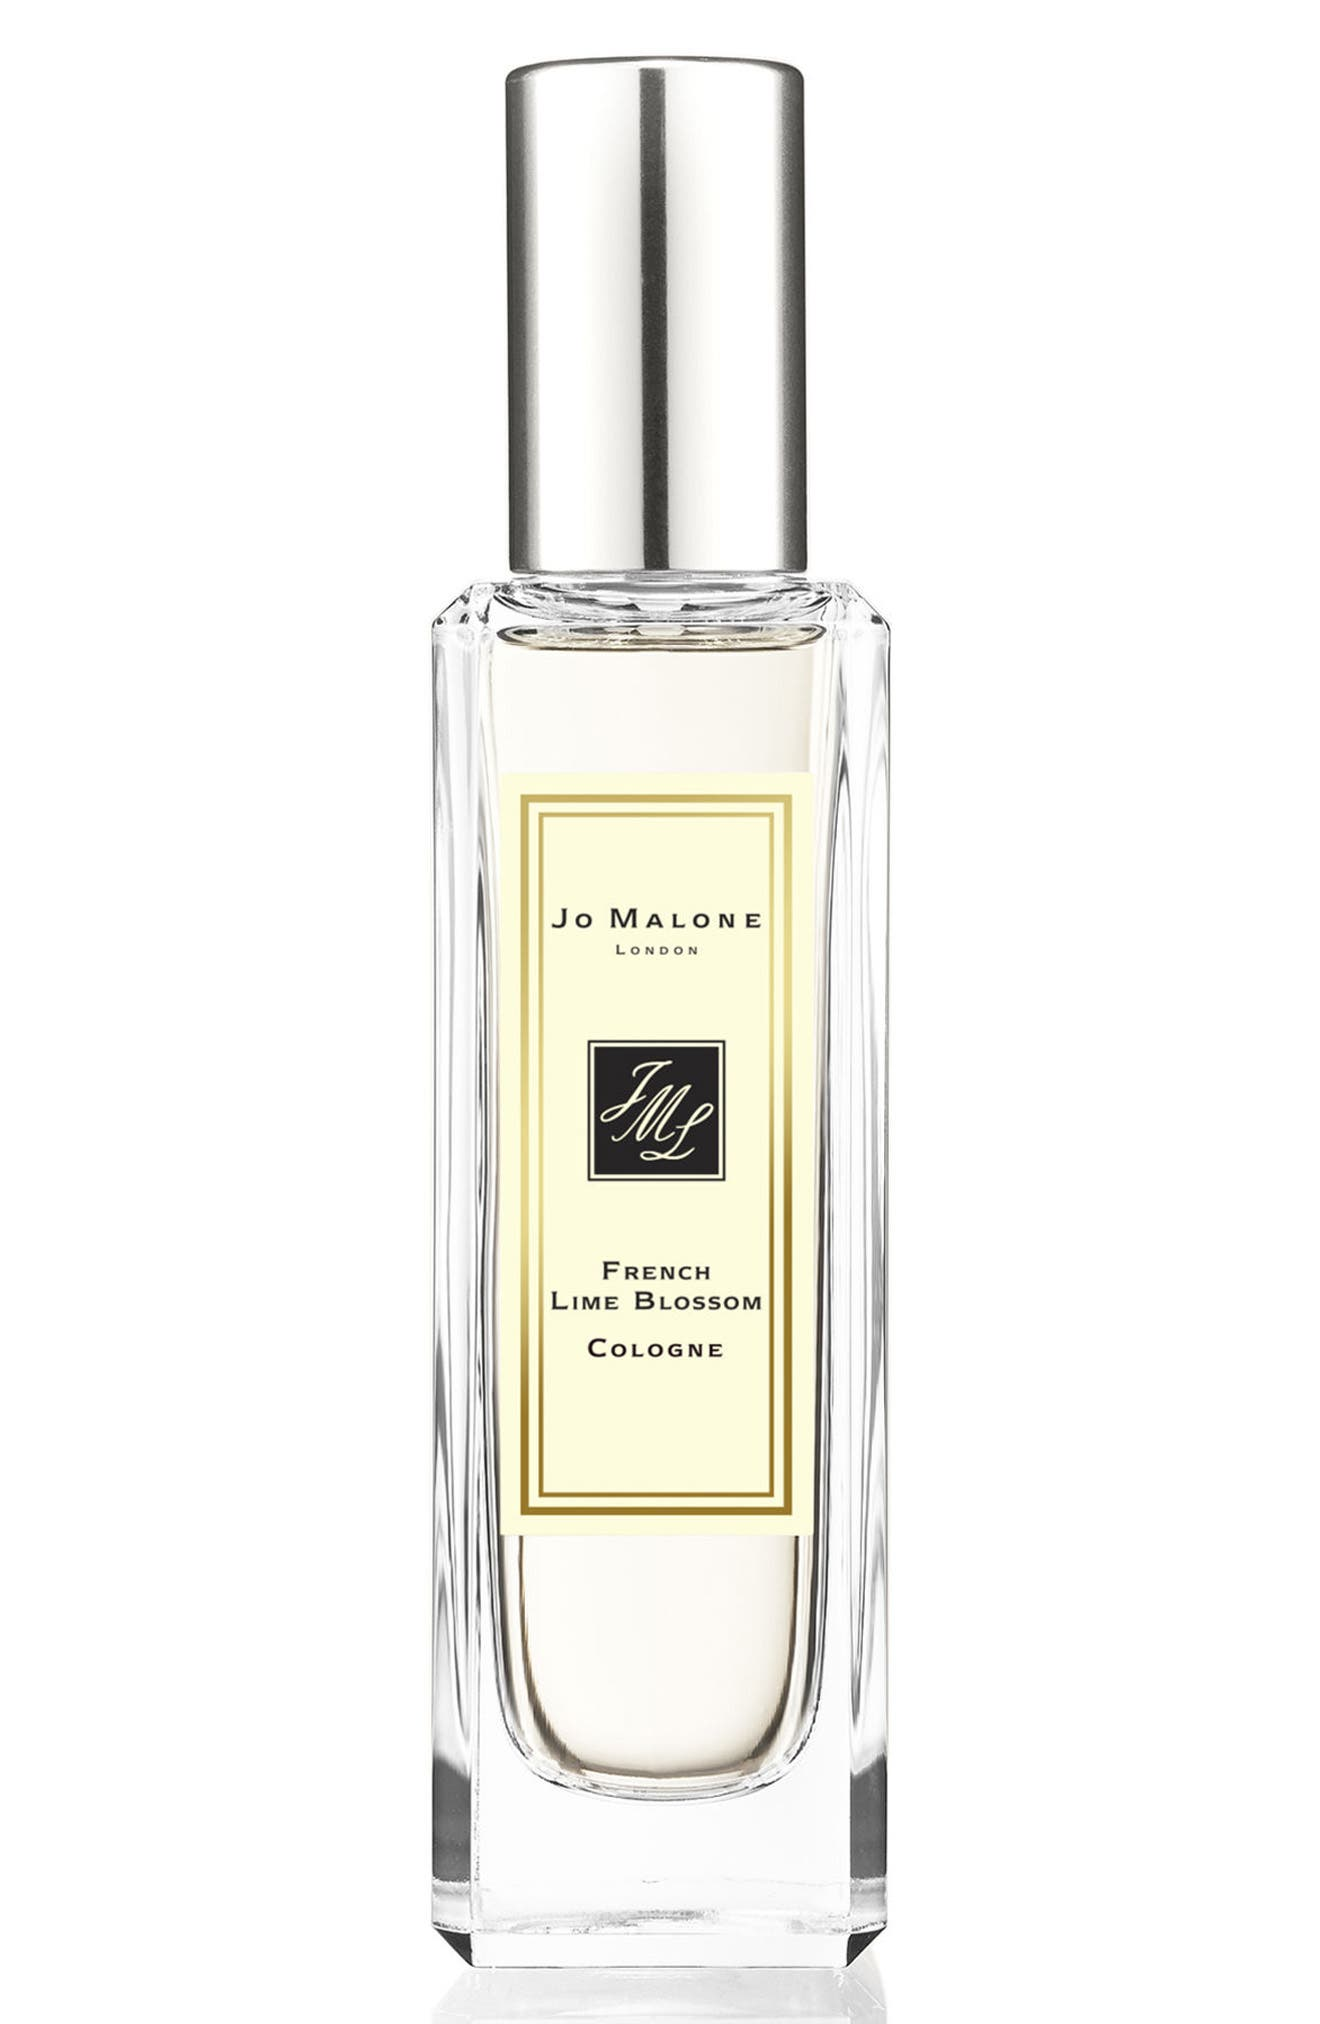 Jo Malone London™ 'French Lime Blossom' Cologne (1 oz.)